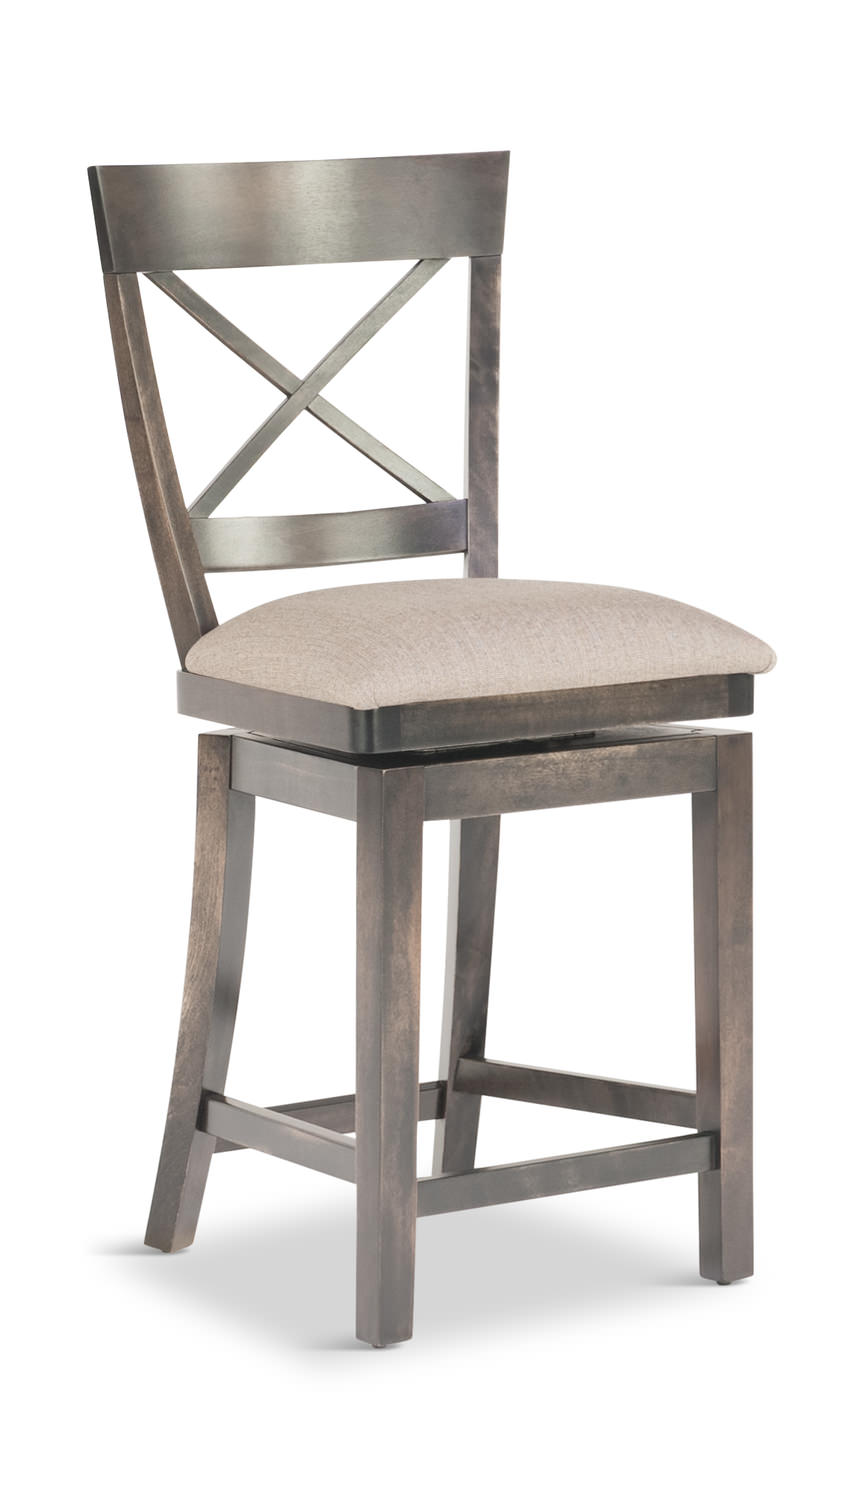 Astounding Dara Swivel Counter Stool Ibusinesslaw Wood Chair Design Ideas Ibusinesslaworg